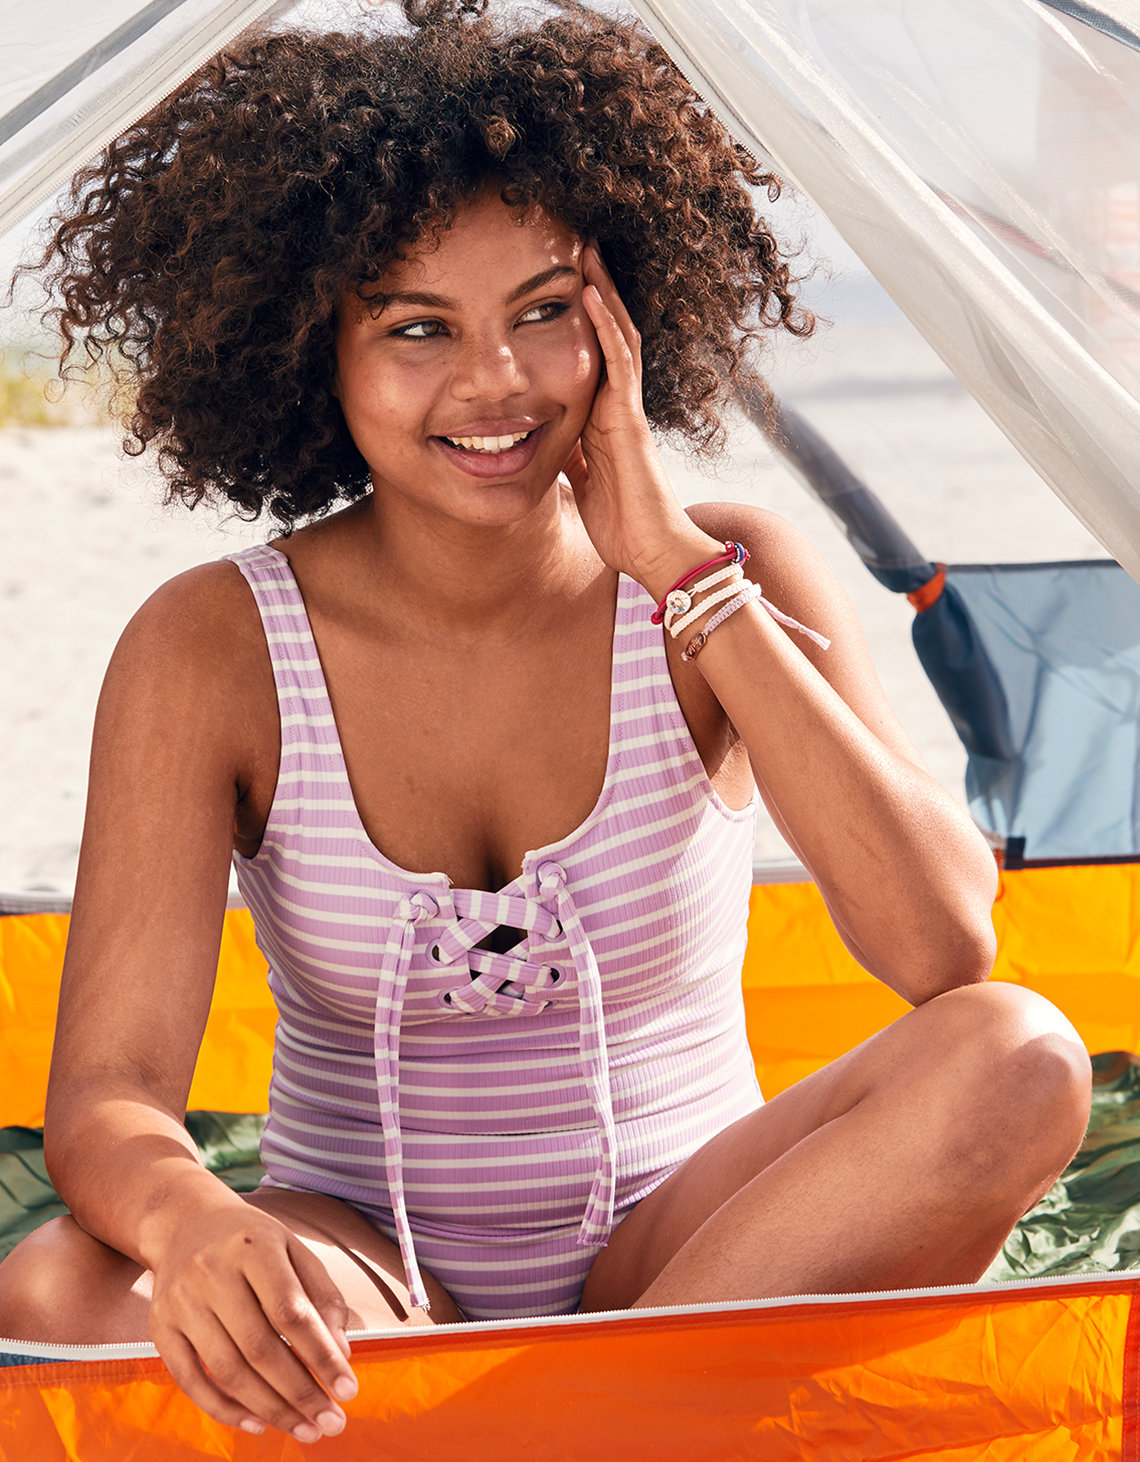 Aerie Lace-Up One Piece Swimsuit